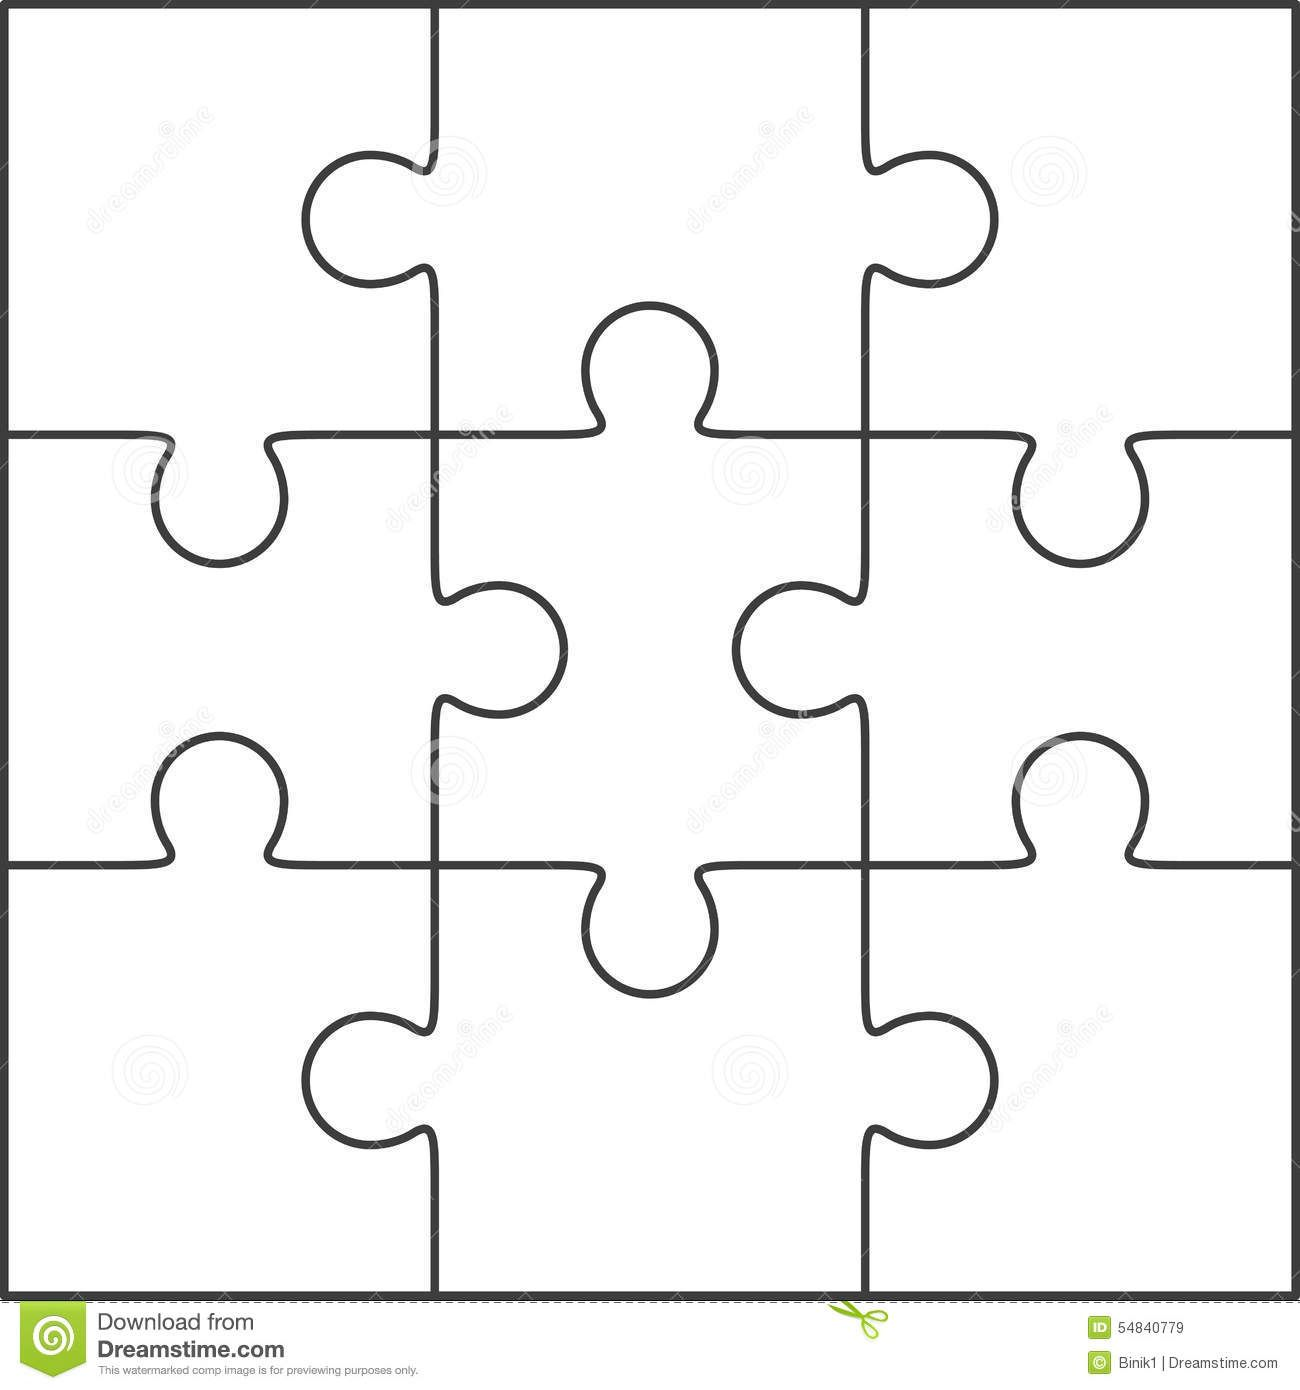 Photo About Jigsaw Puzzle Blank Simple Template 3x3 Illustration Of Background Idea Connect